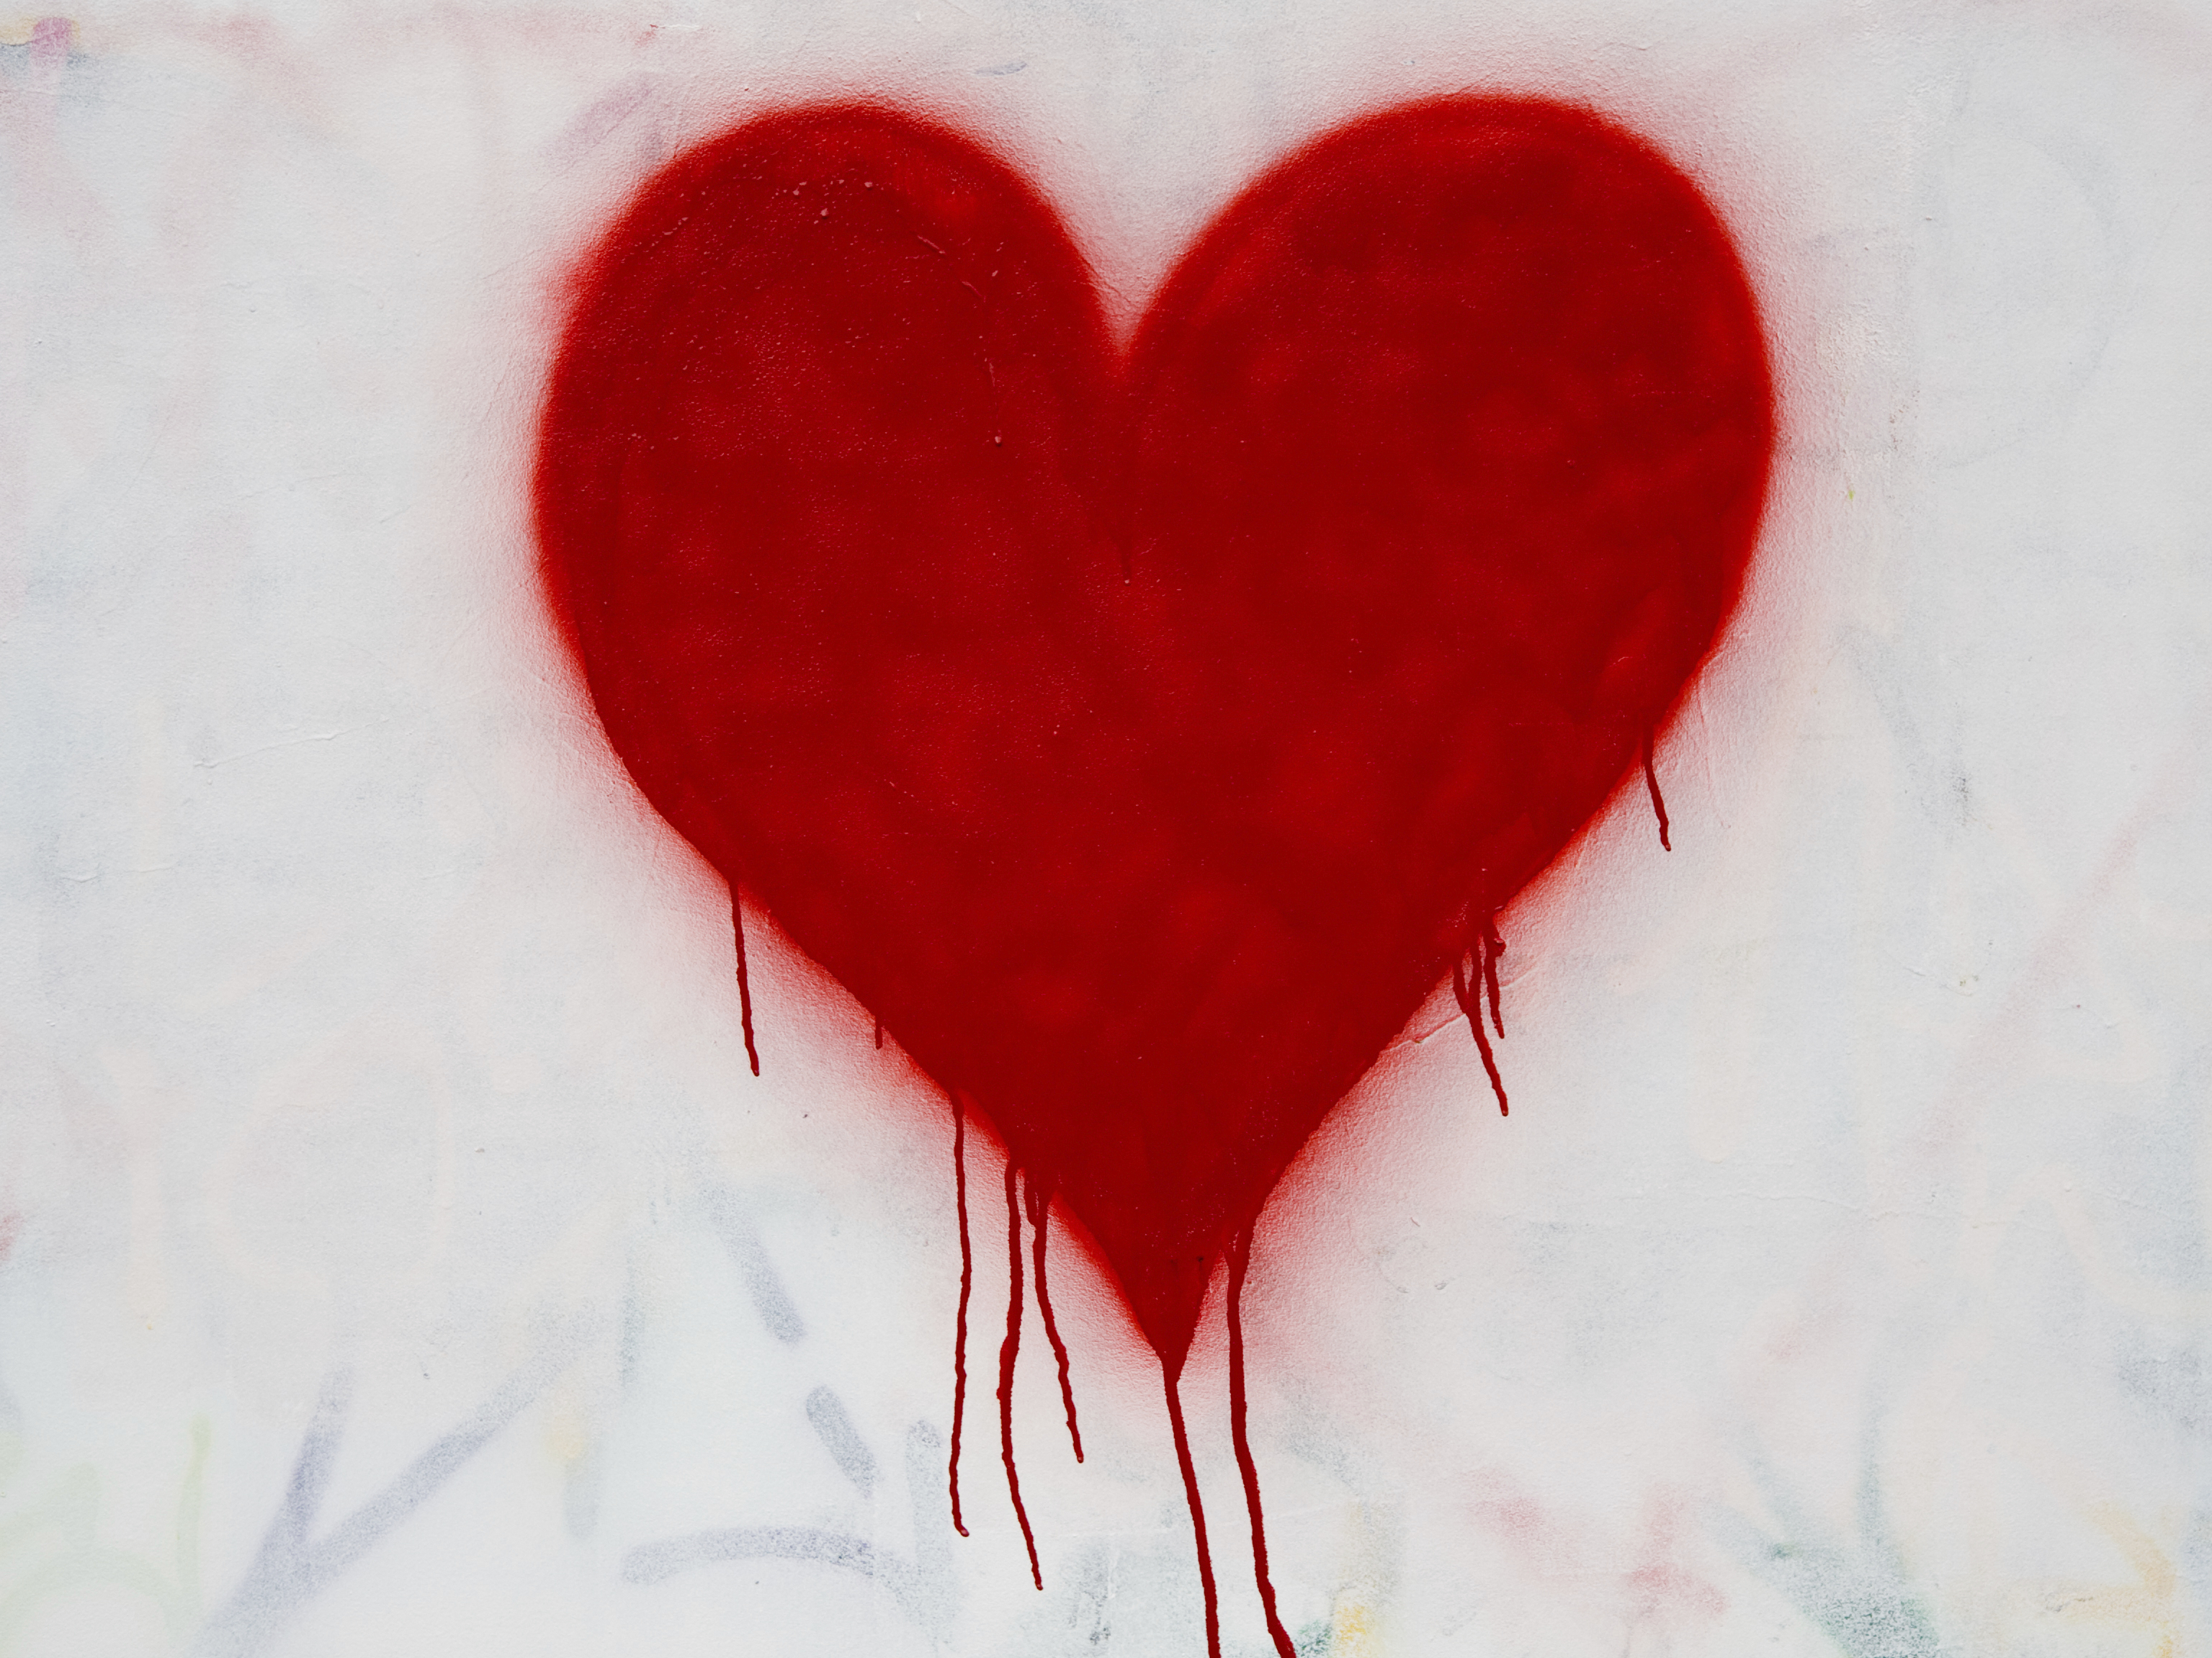 The Heartbleed bug has exposed up to two-thirds of the Internet to a security vulnerability.